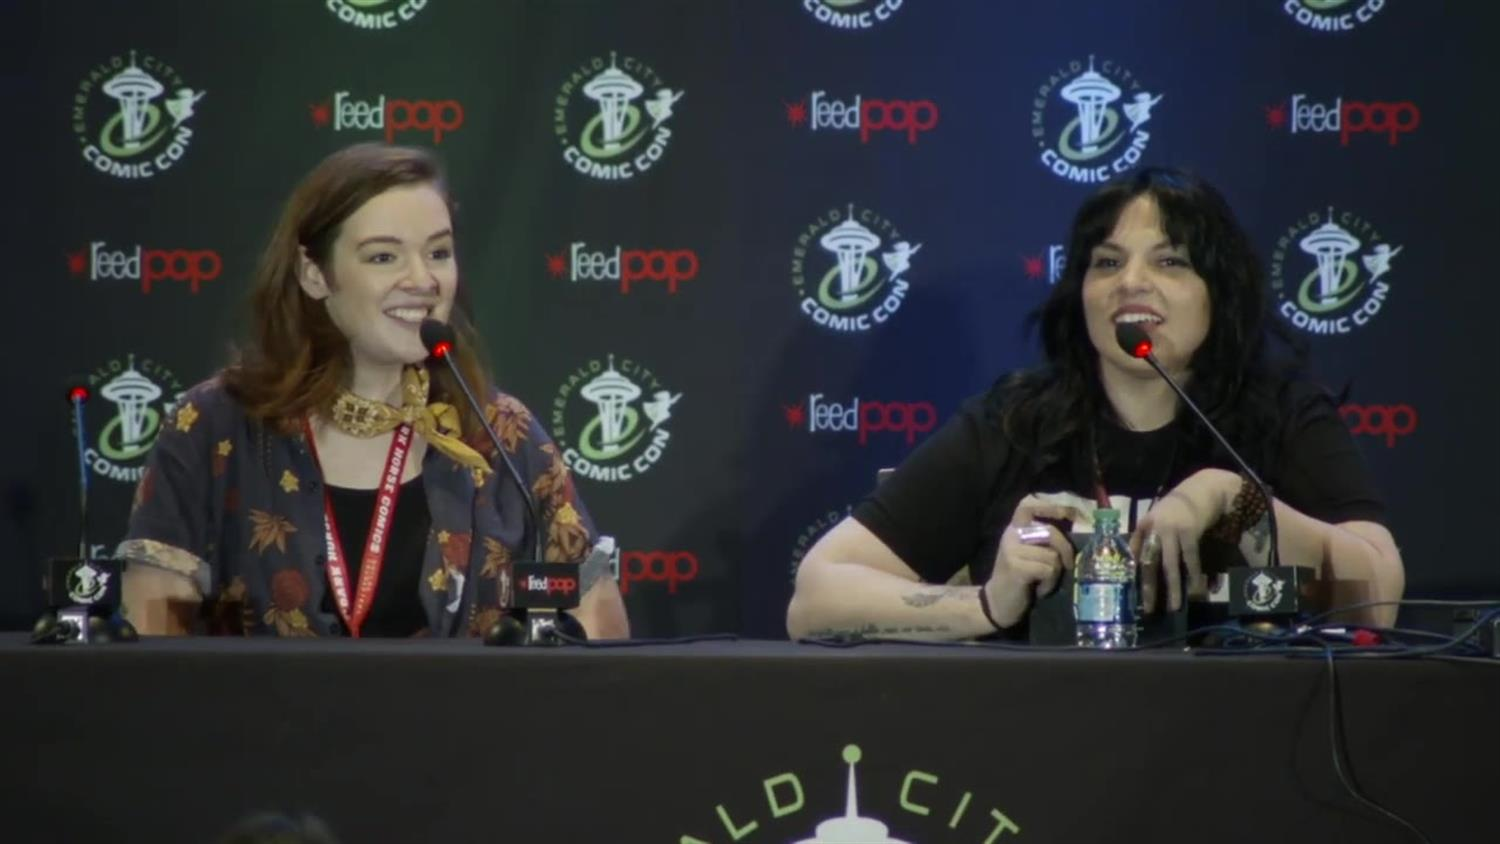 She-Ra & the Princesses of Power: Full Panel (ECCC 2019)